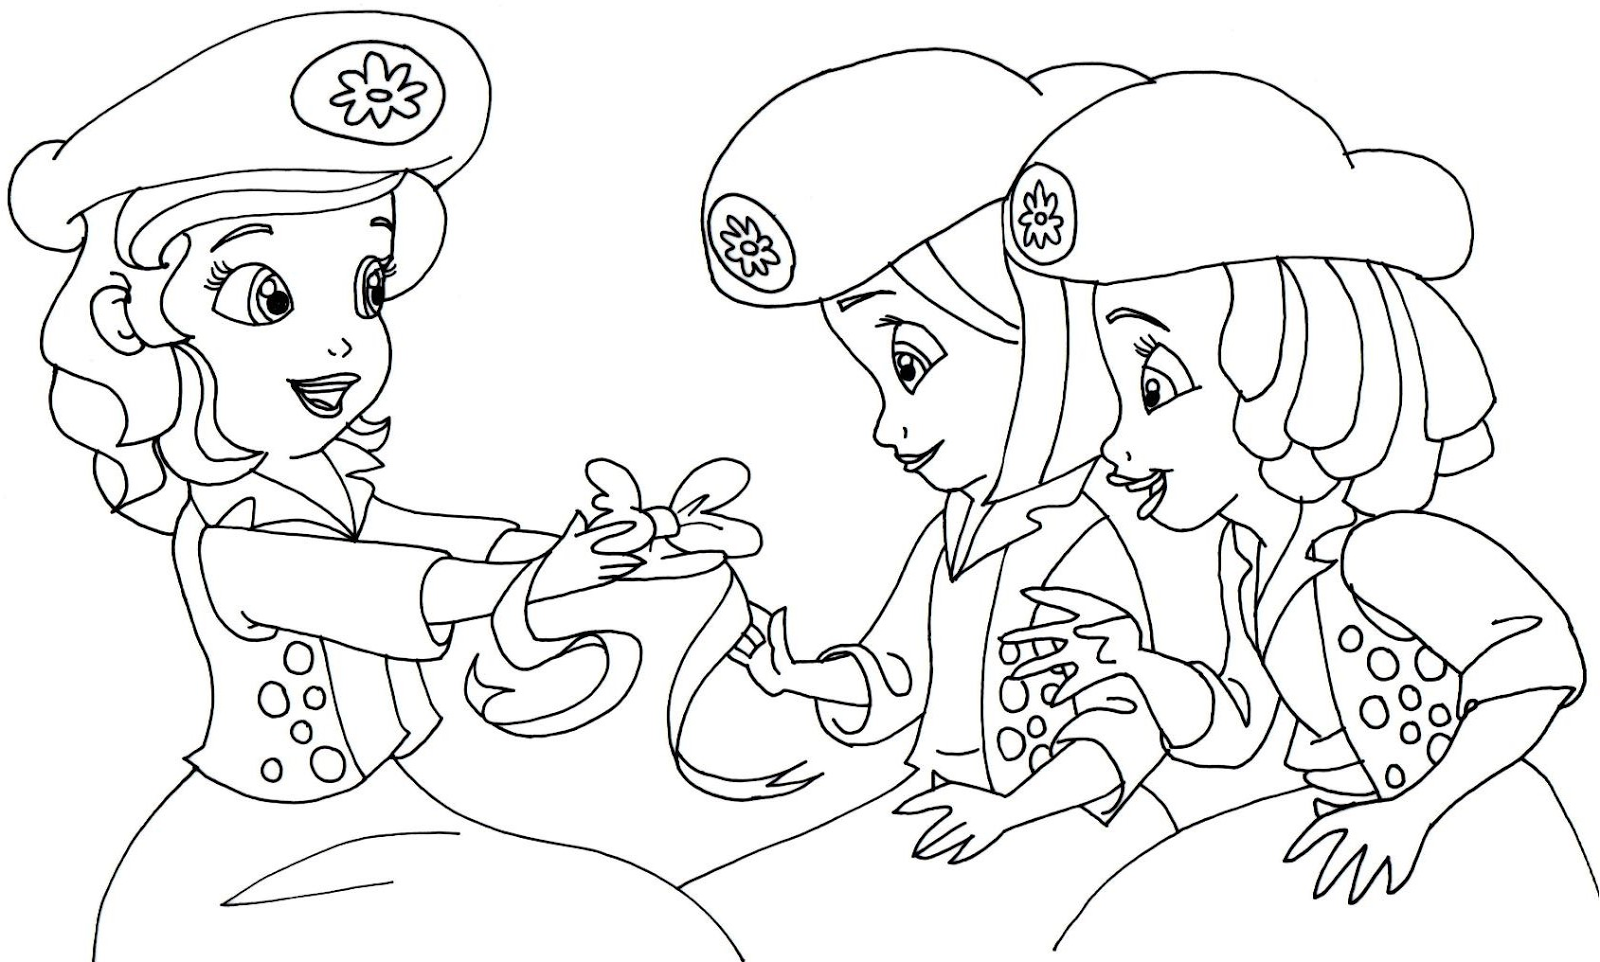 sofia the first coloring pages buttercups sofia the first